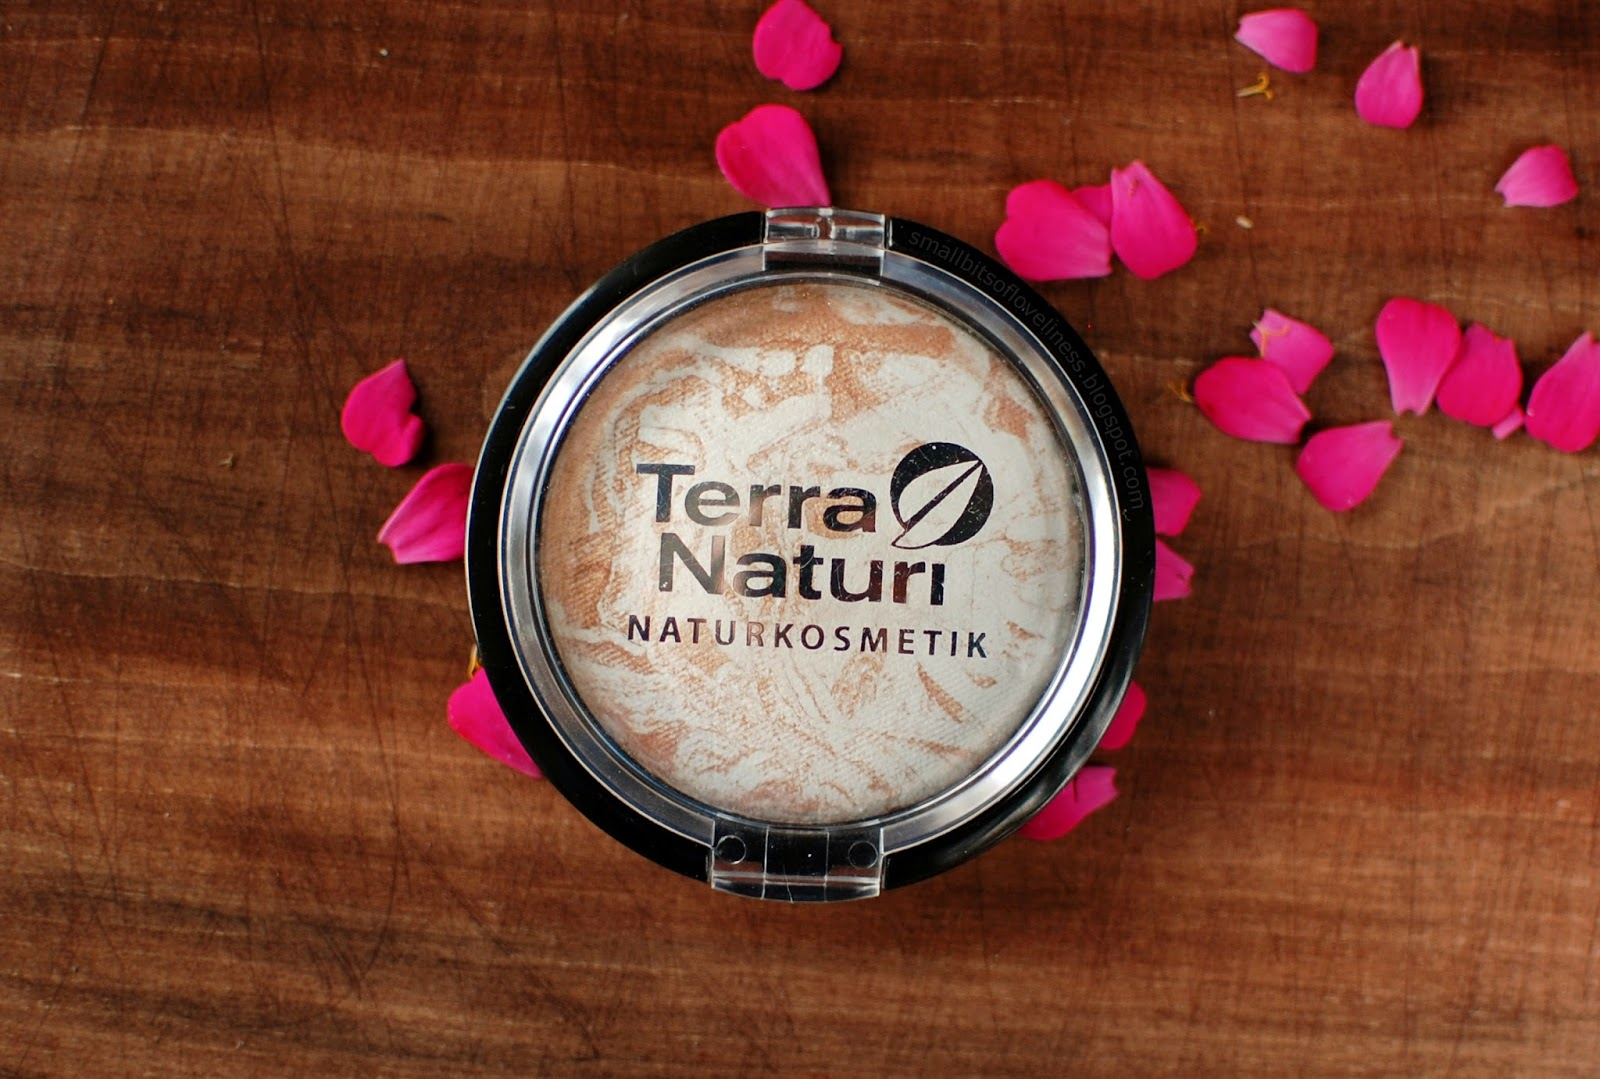 Terra Naturi Golden Highlight Shimmer Powder Body & Face